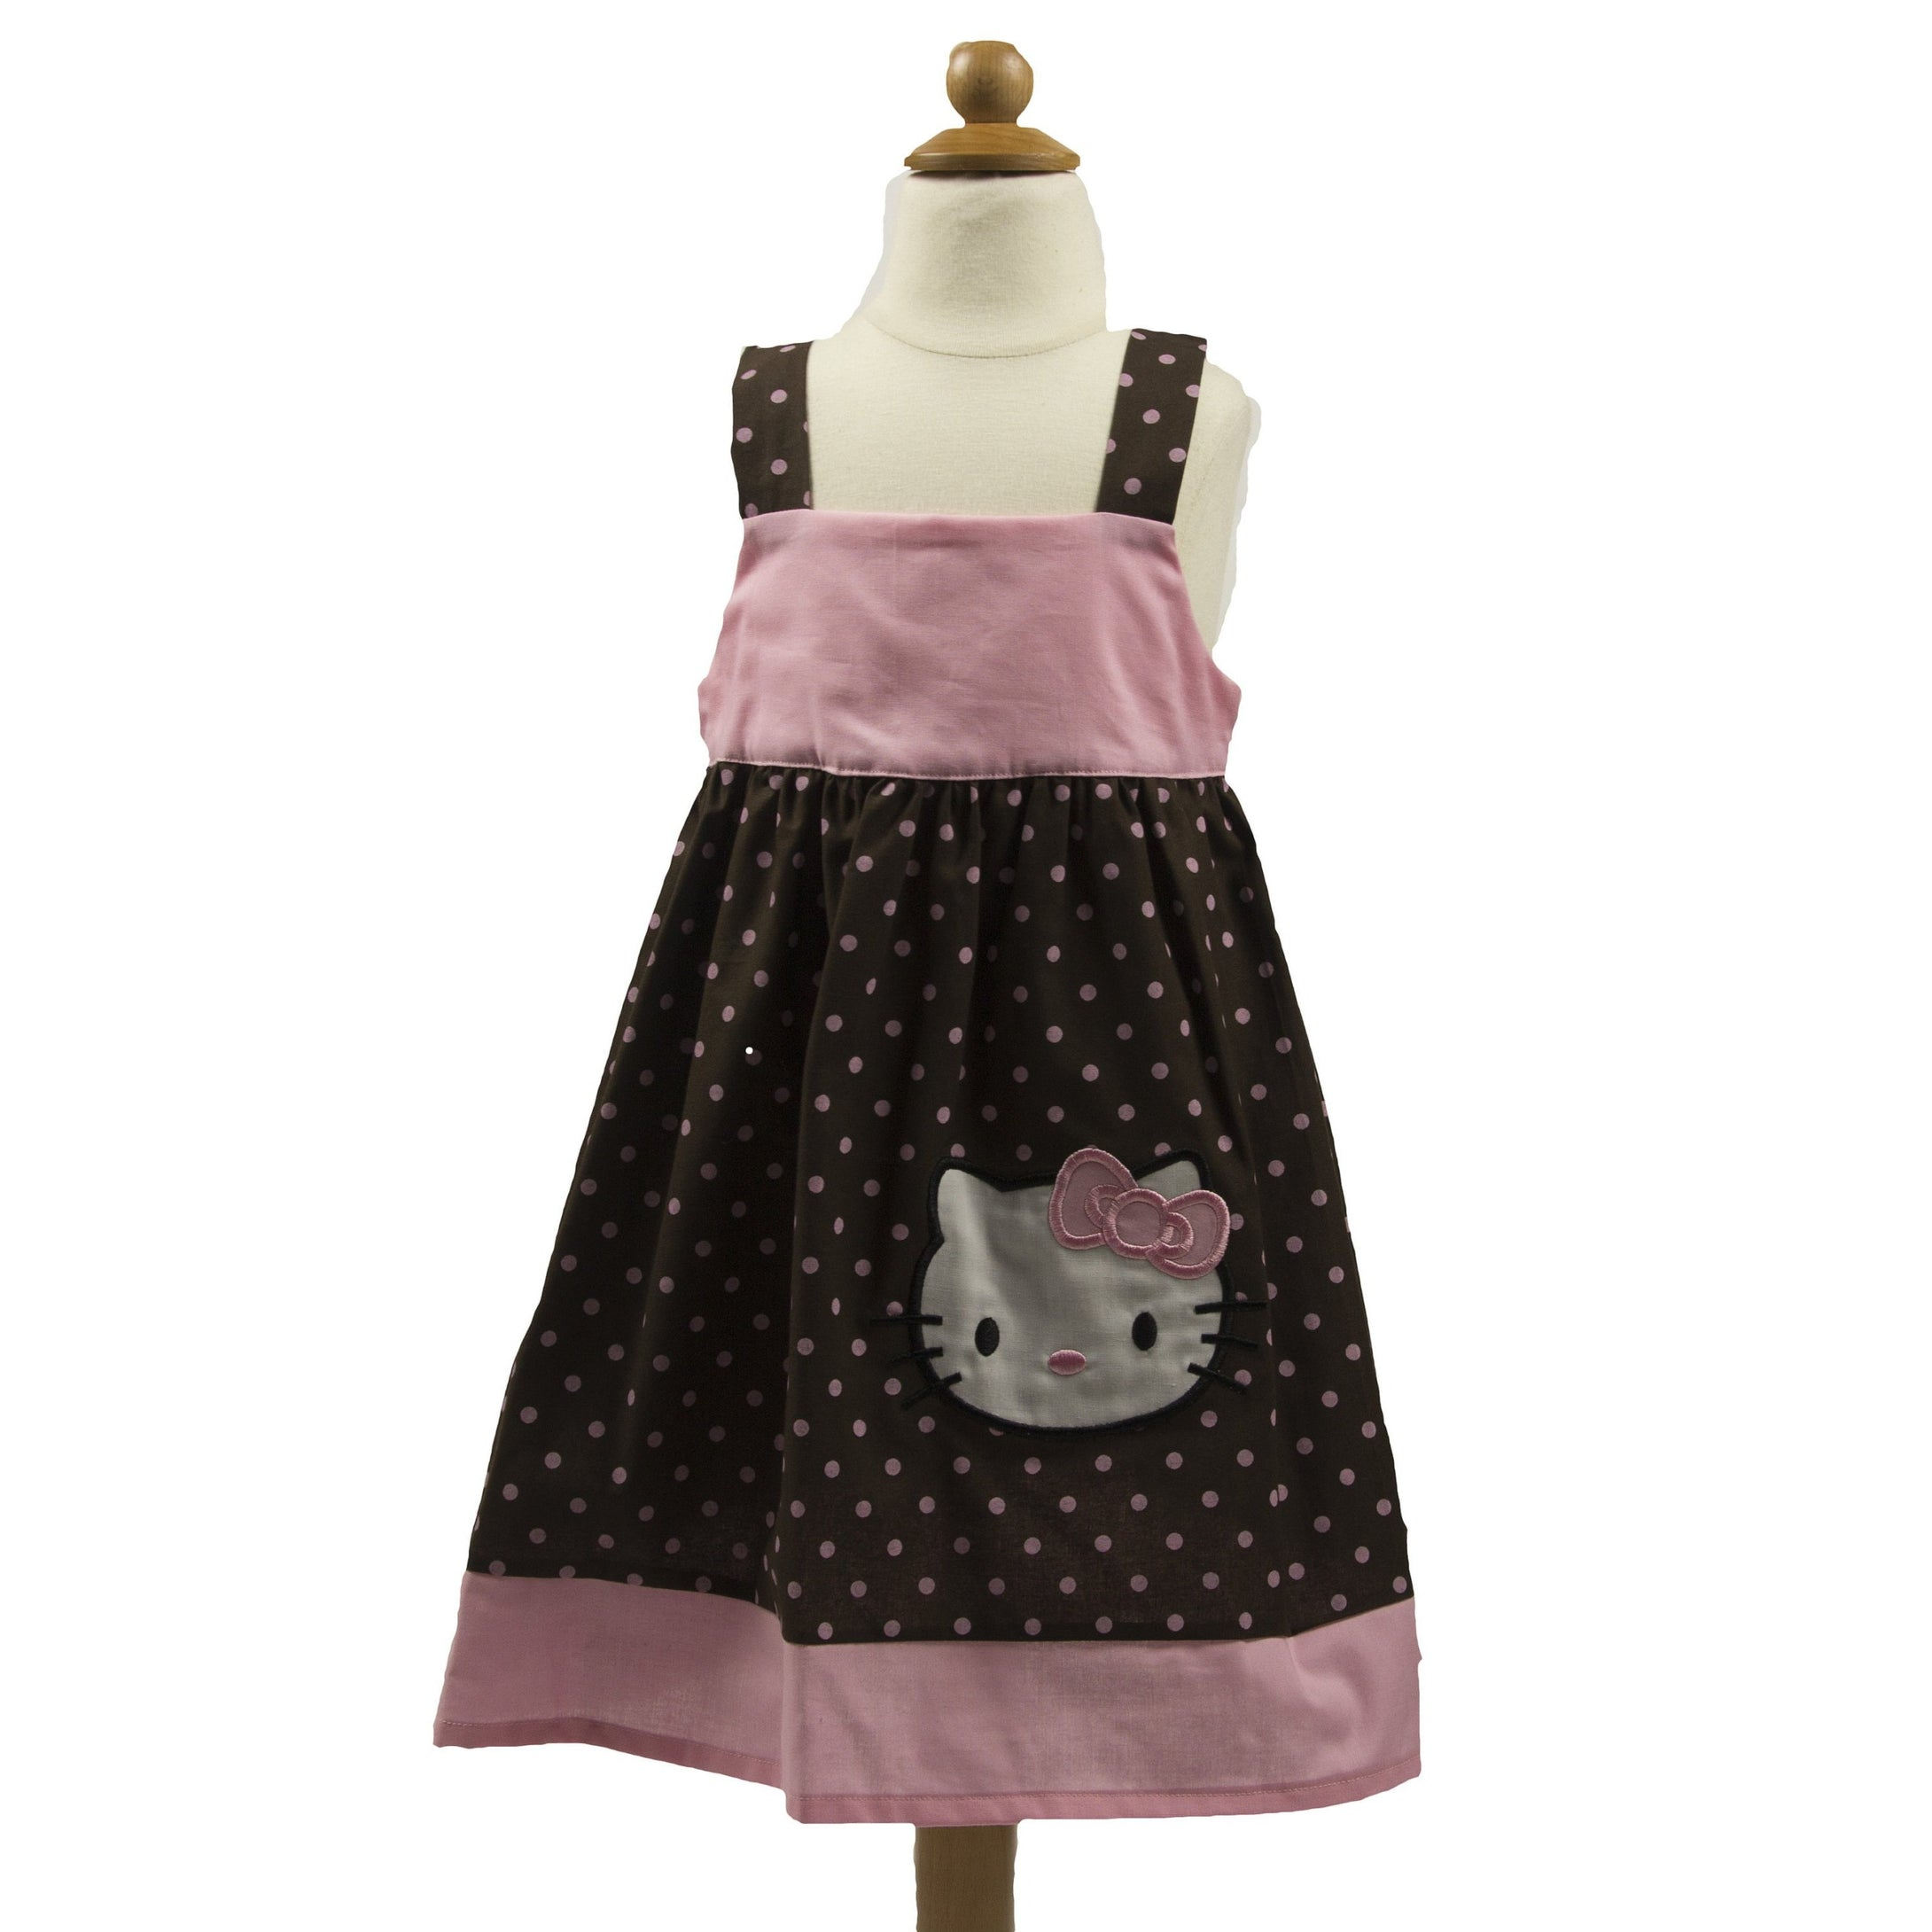 KITTY BIRTHDAY DRESS - Hello girls  birthday dress - Hello summer dress -  toddler birthday dress - kitty  dress